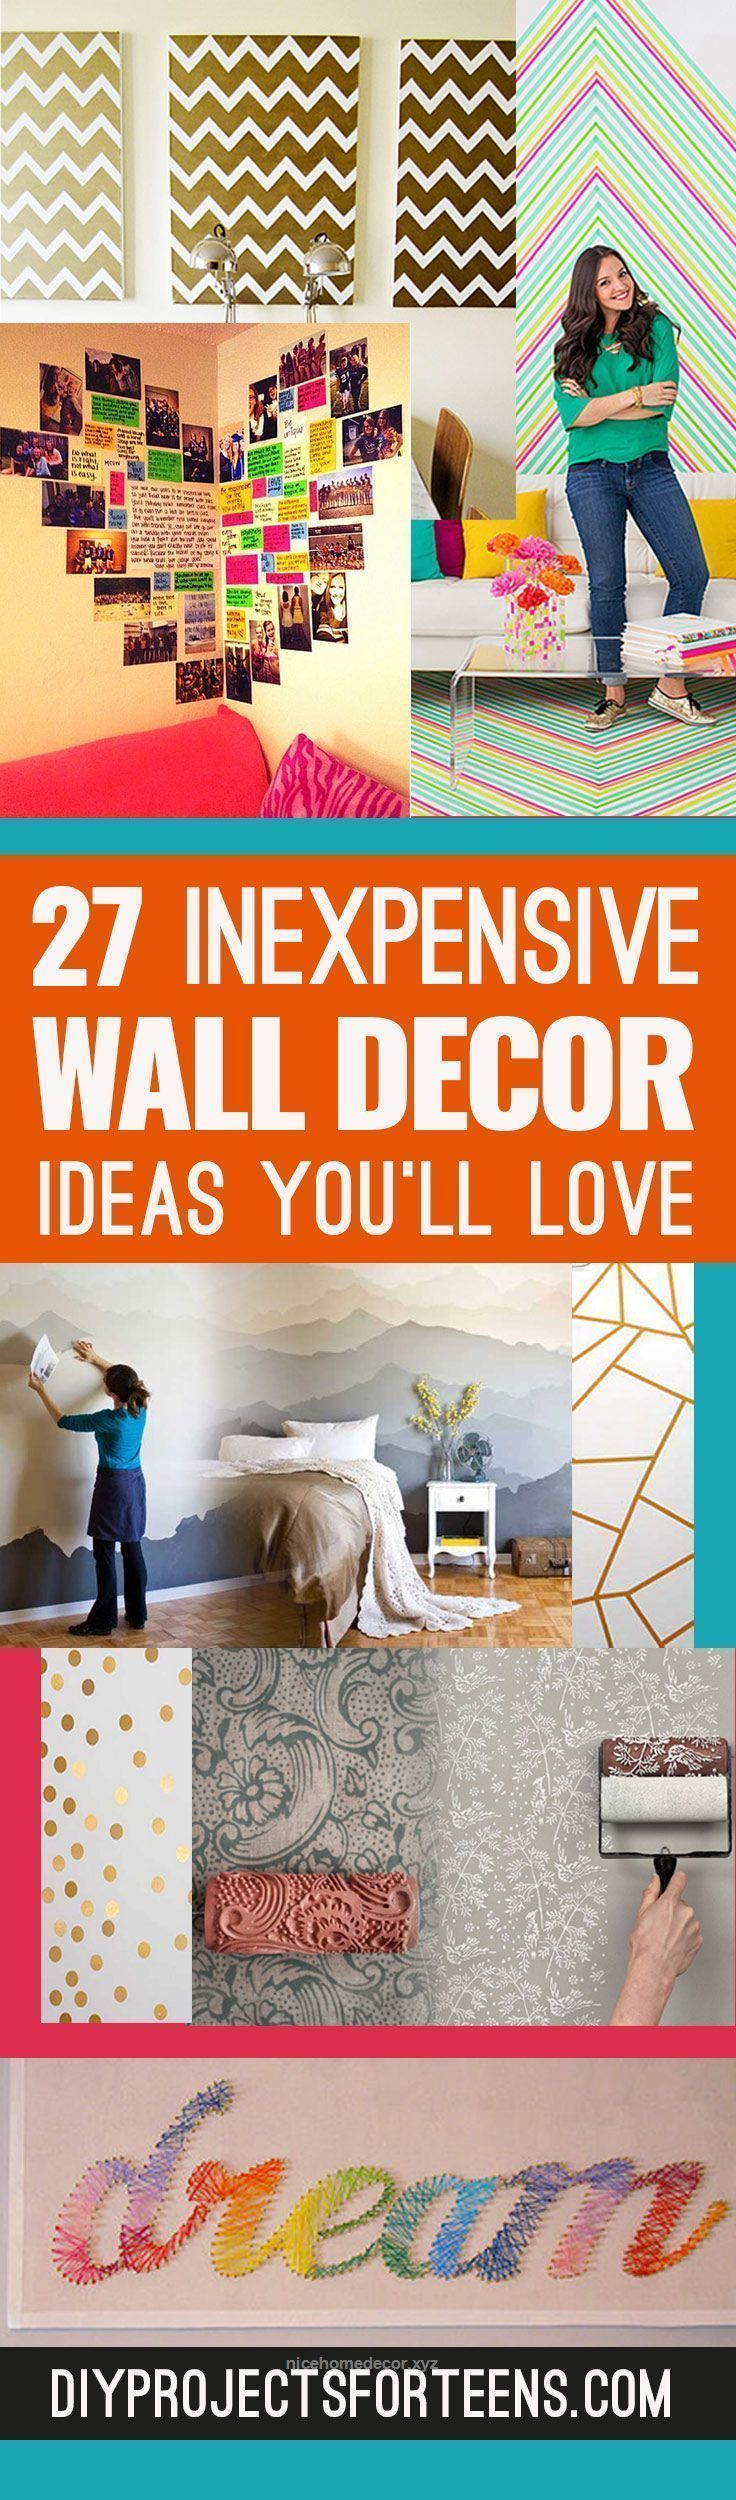 best oliviaus room images on pinterest arrows craft and